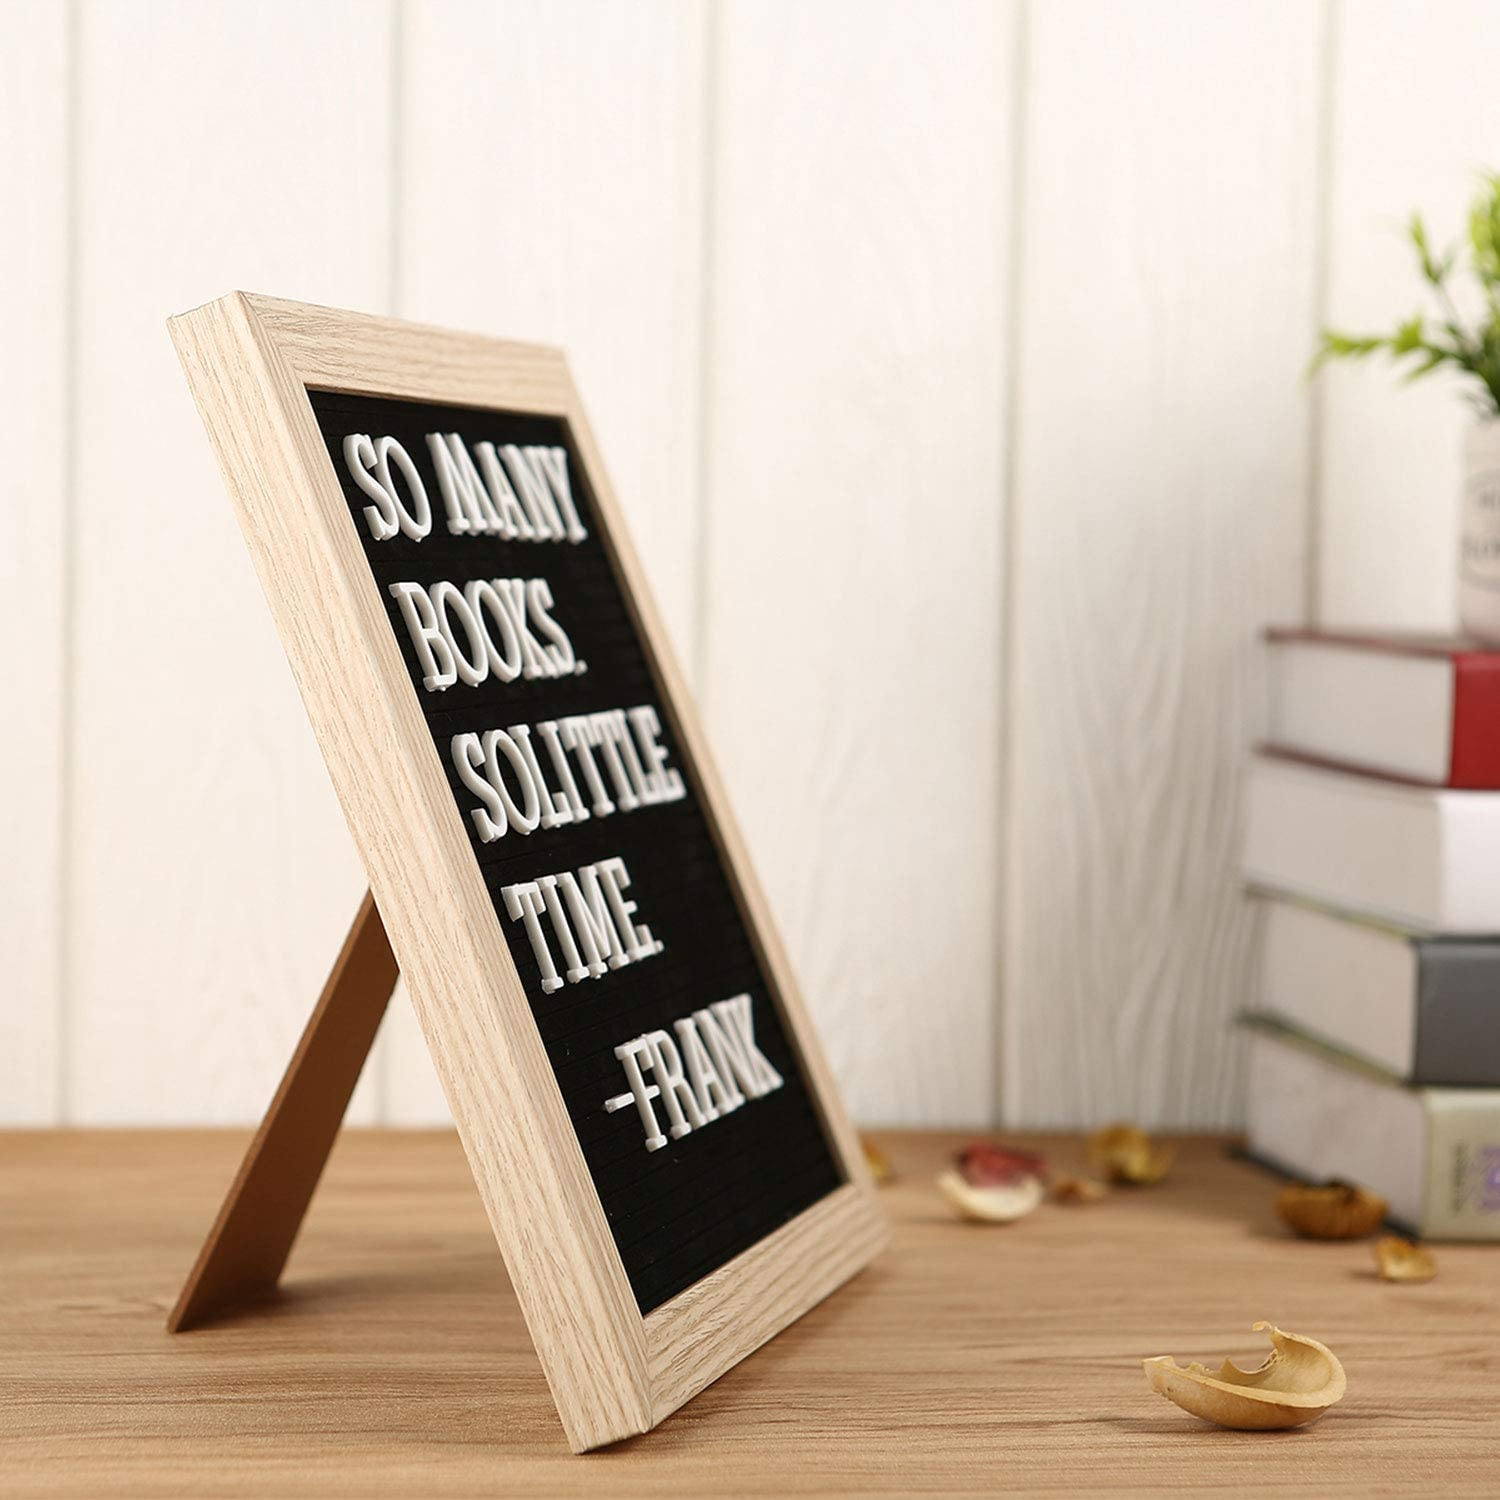 10x10 inches with Display Stand Wood Frame by C Crystal Lemon Letter Board by Crystal Lemon Felt Letter Board Black Changeable Wooden Message Board Sign Wall Mount